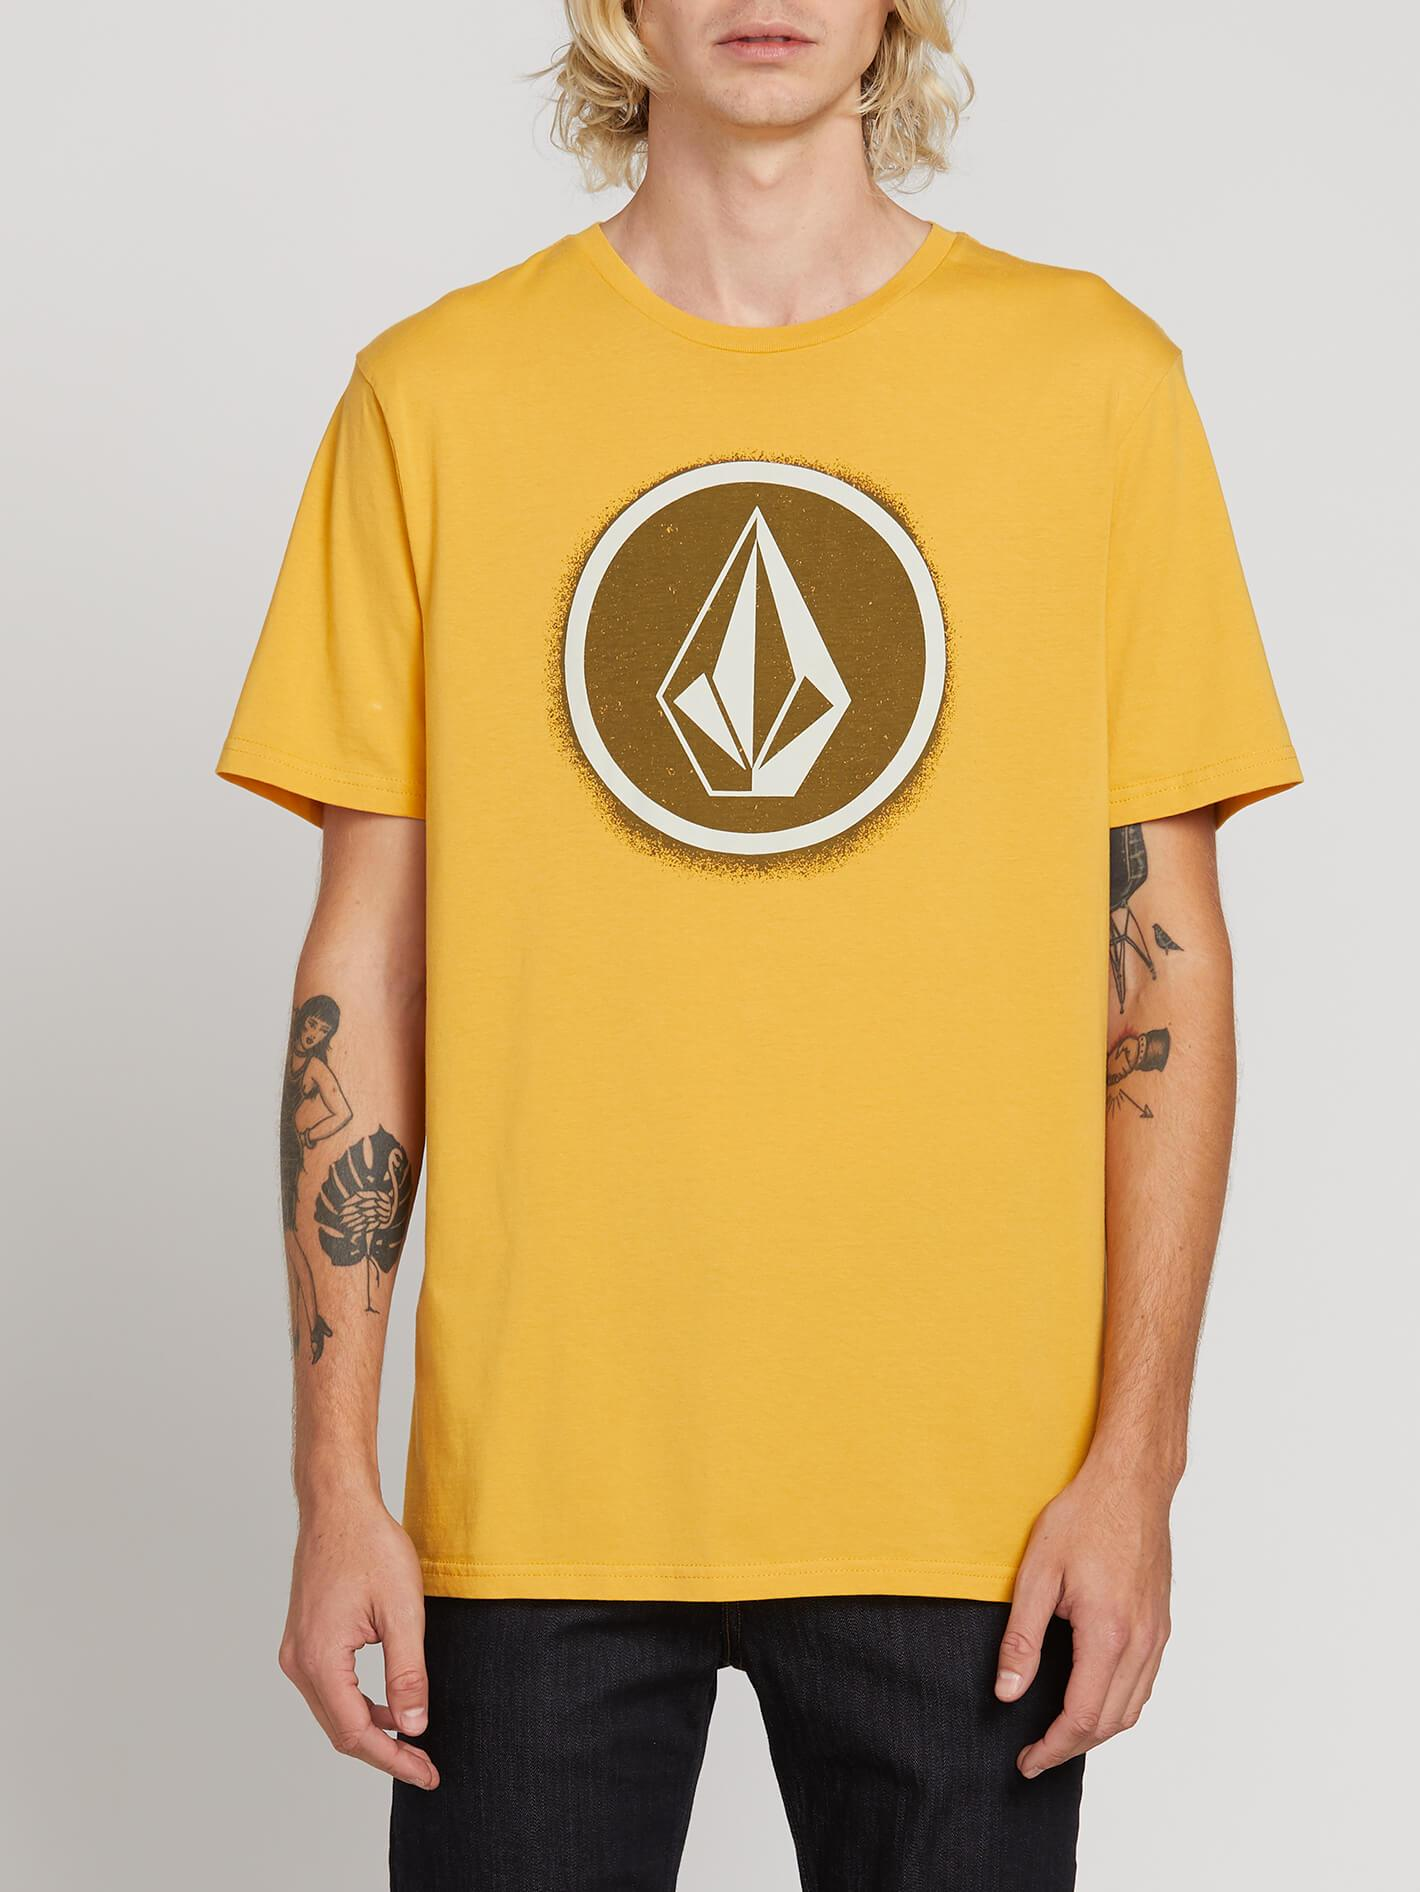 Volcom Spray Stone T-Shirt - 88 Gear